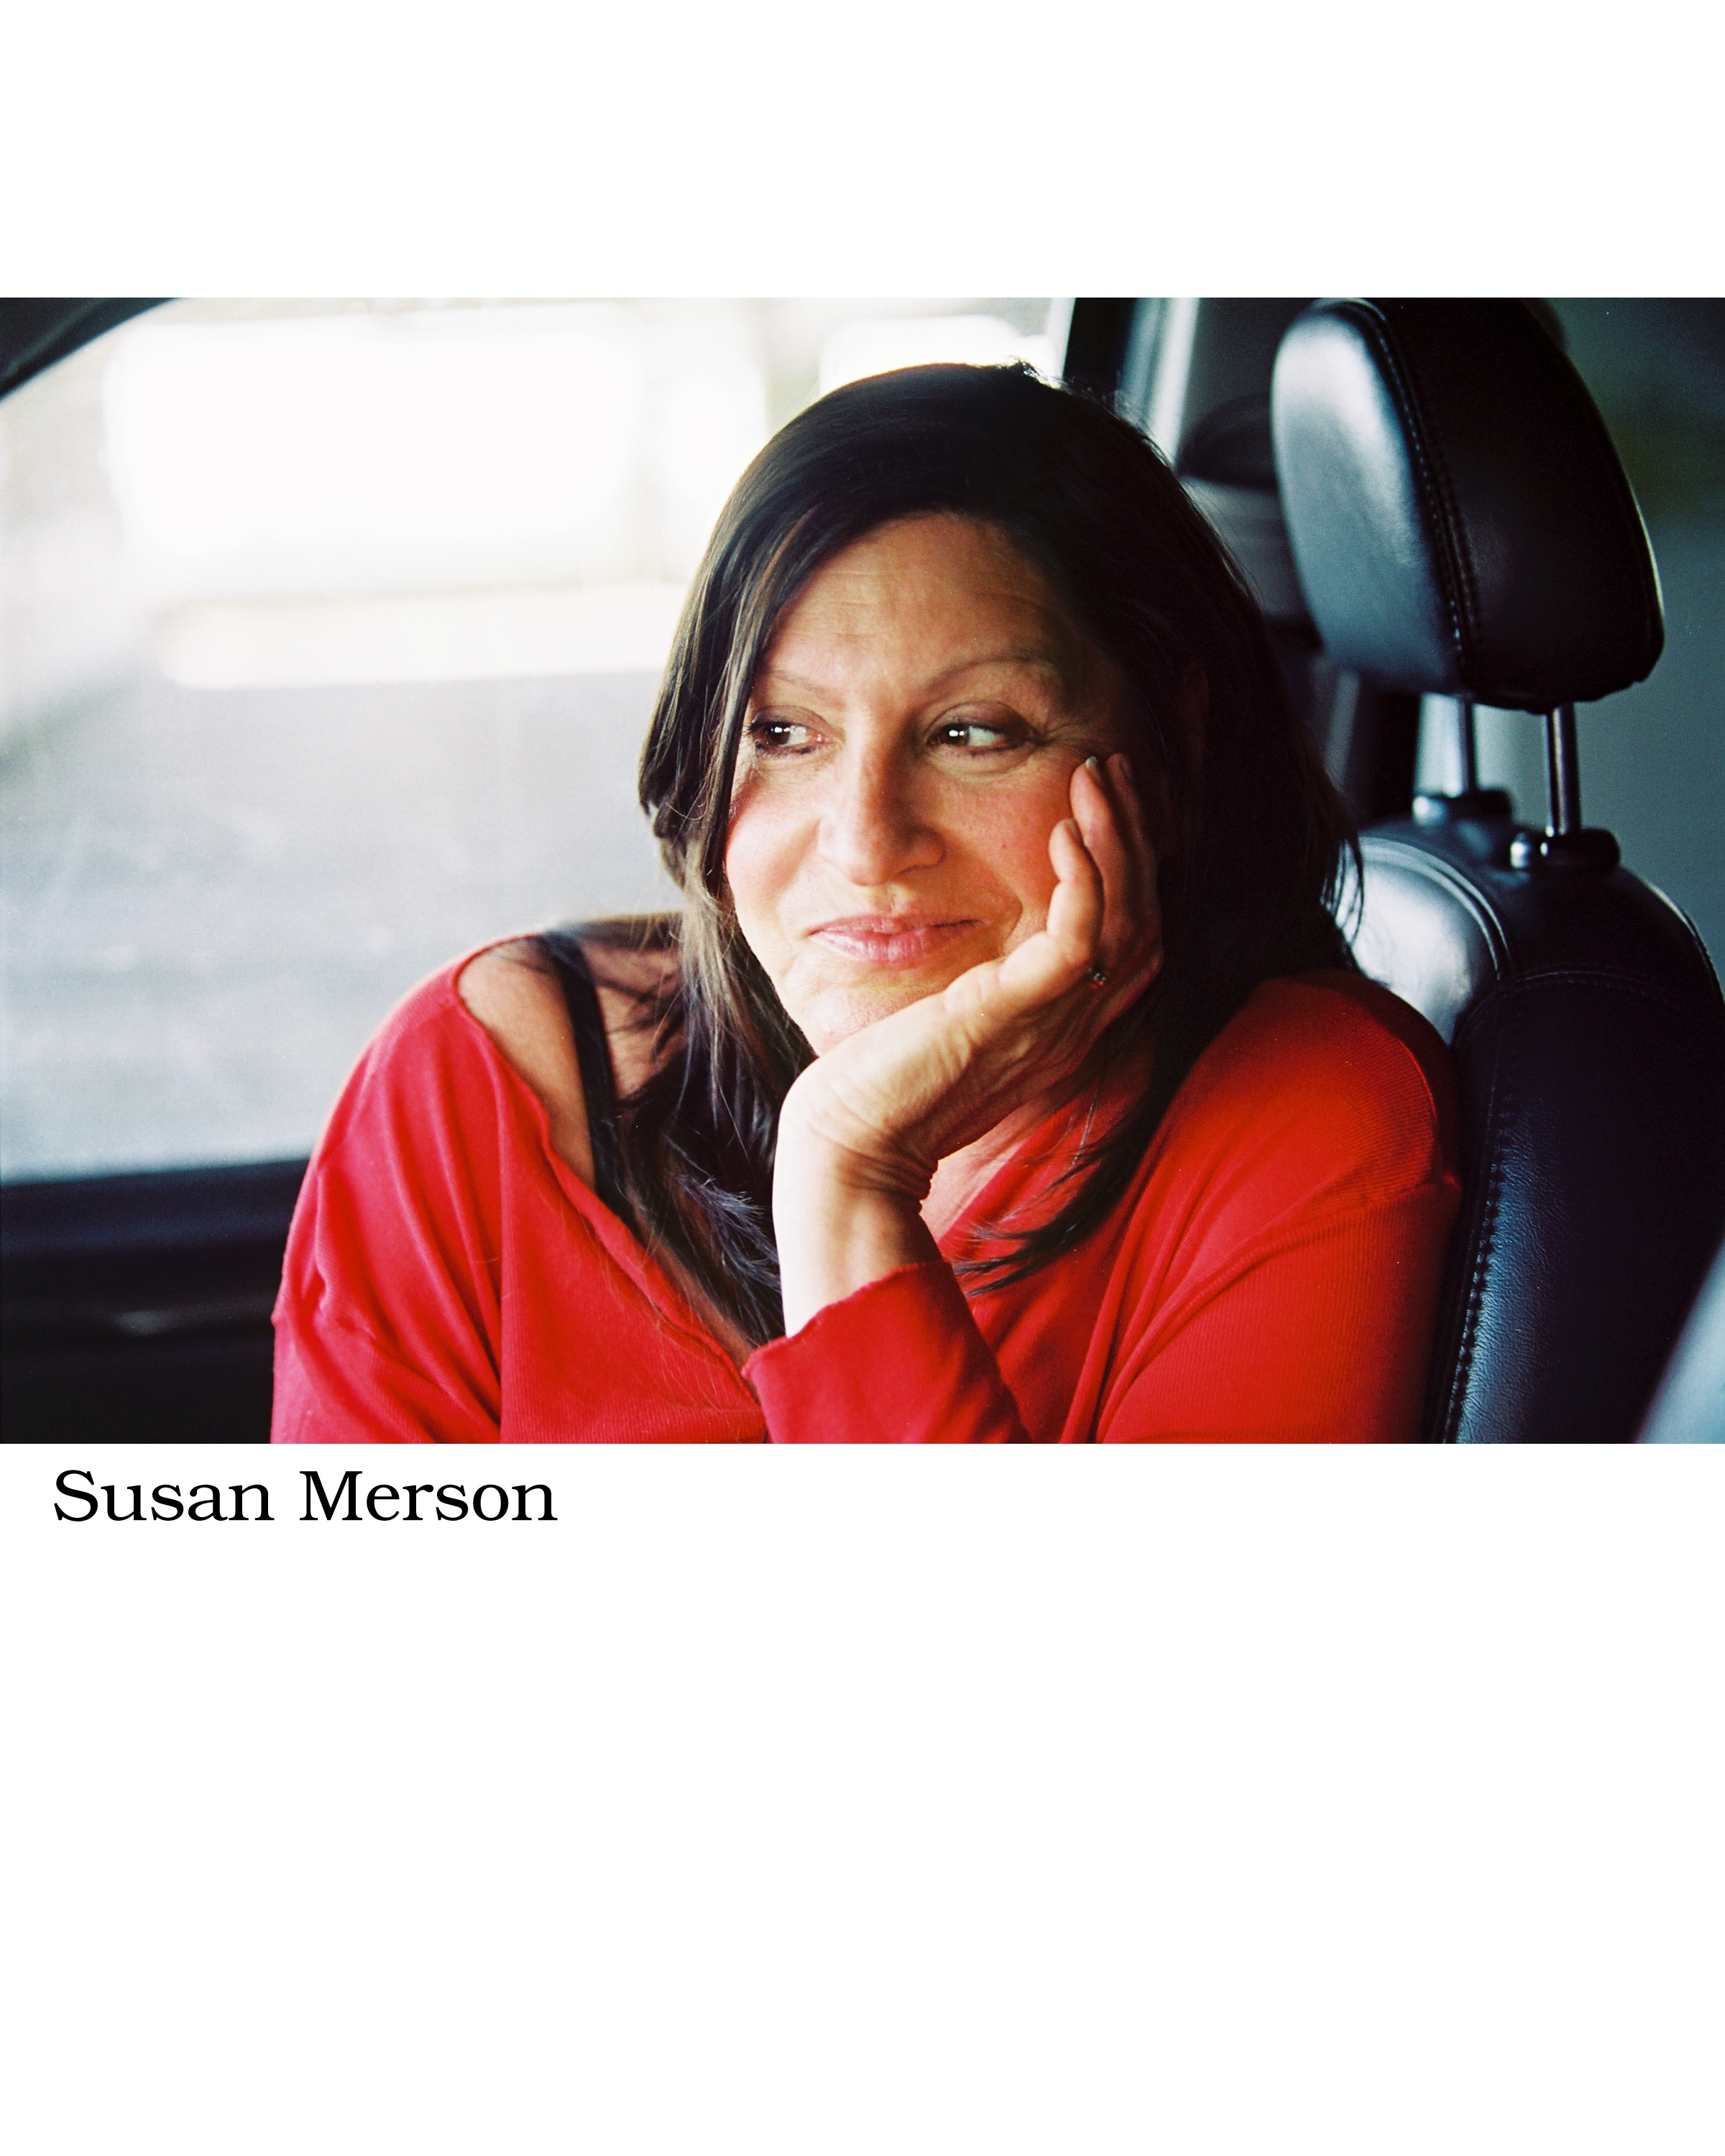 Susan Merson's primary photo